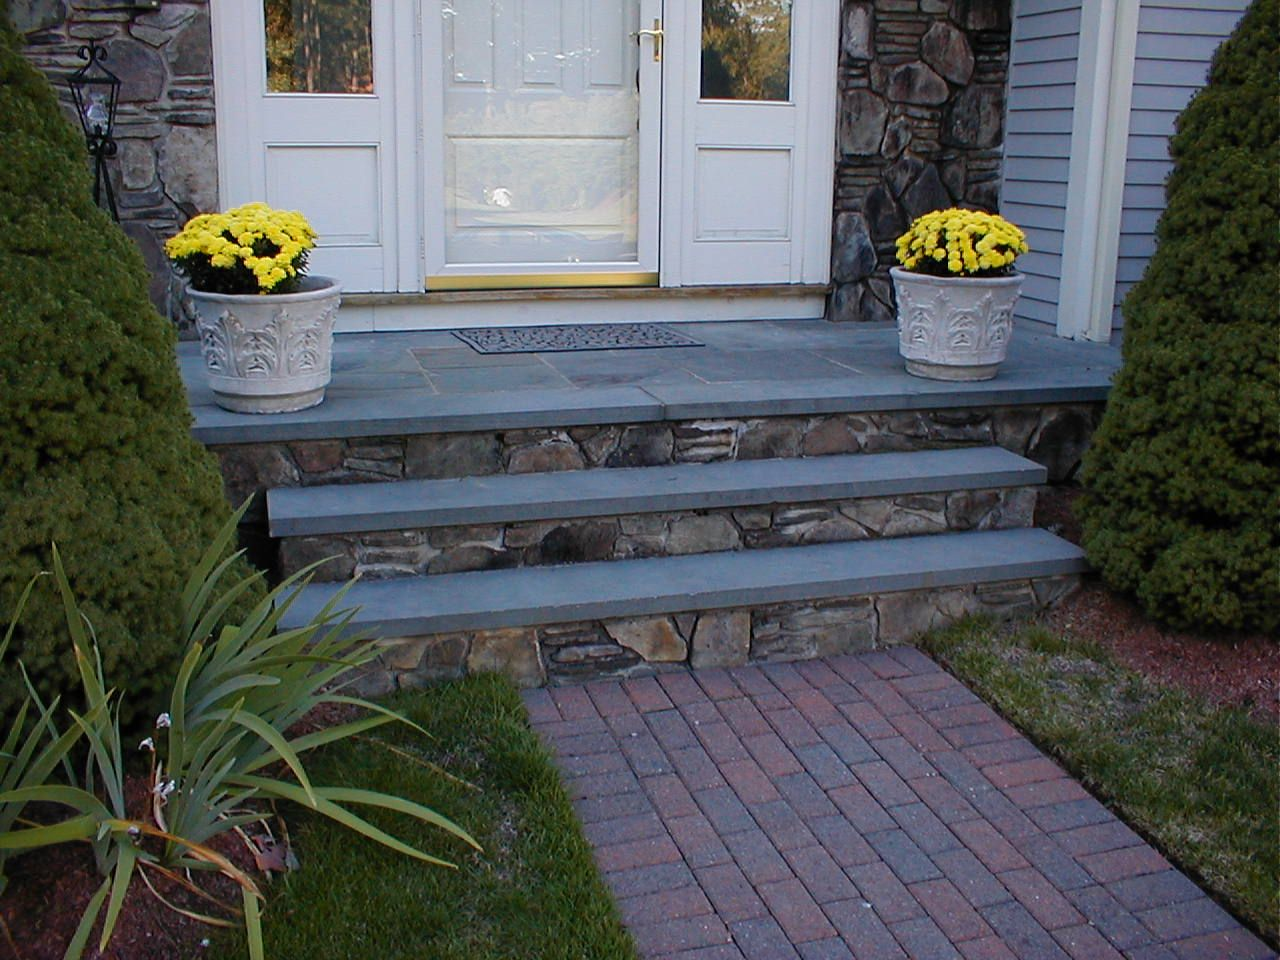 Good Add Bluestone To Front Step Treads Someday.